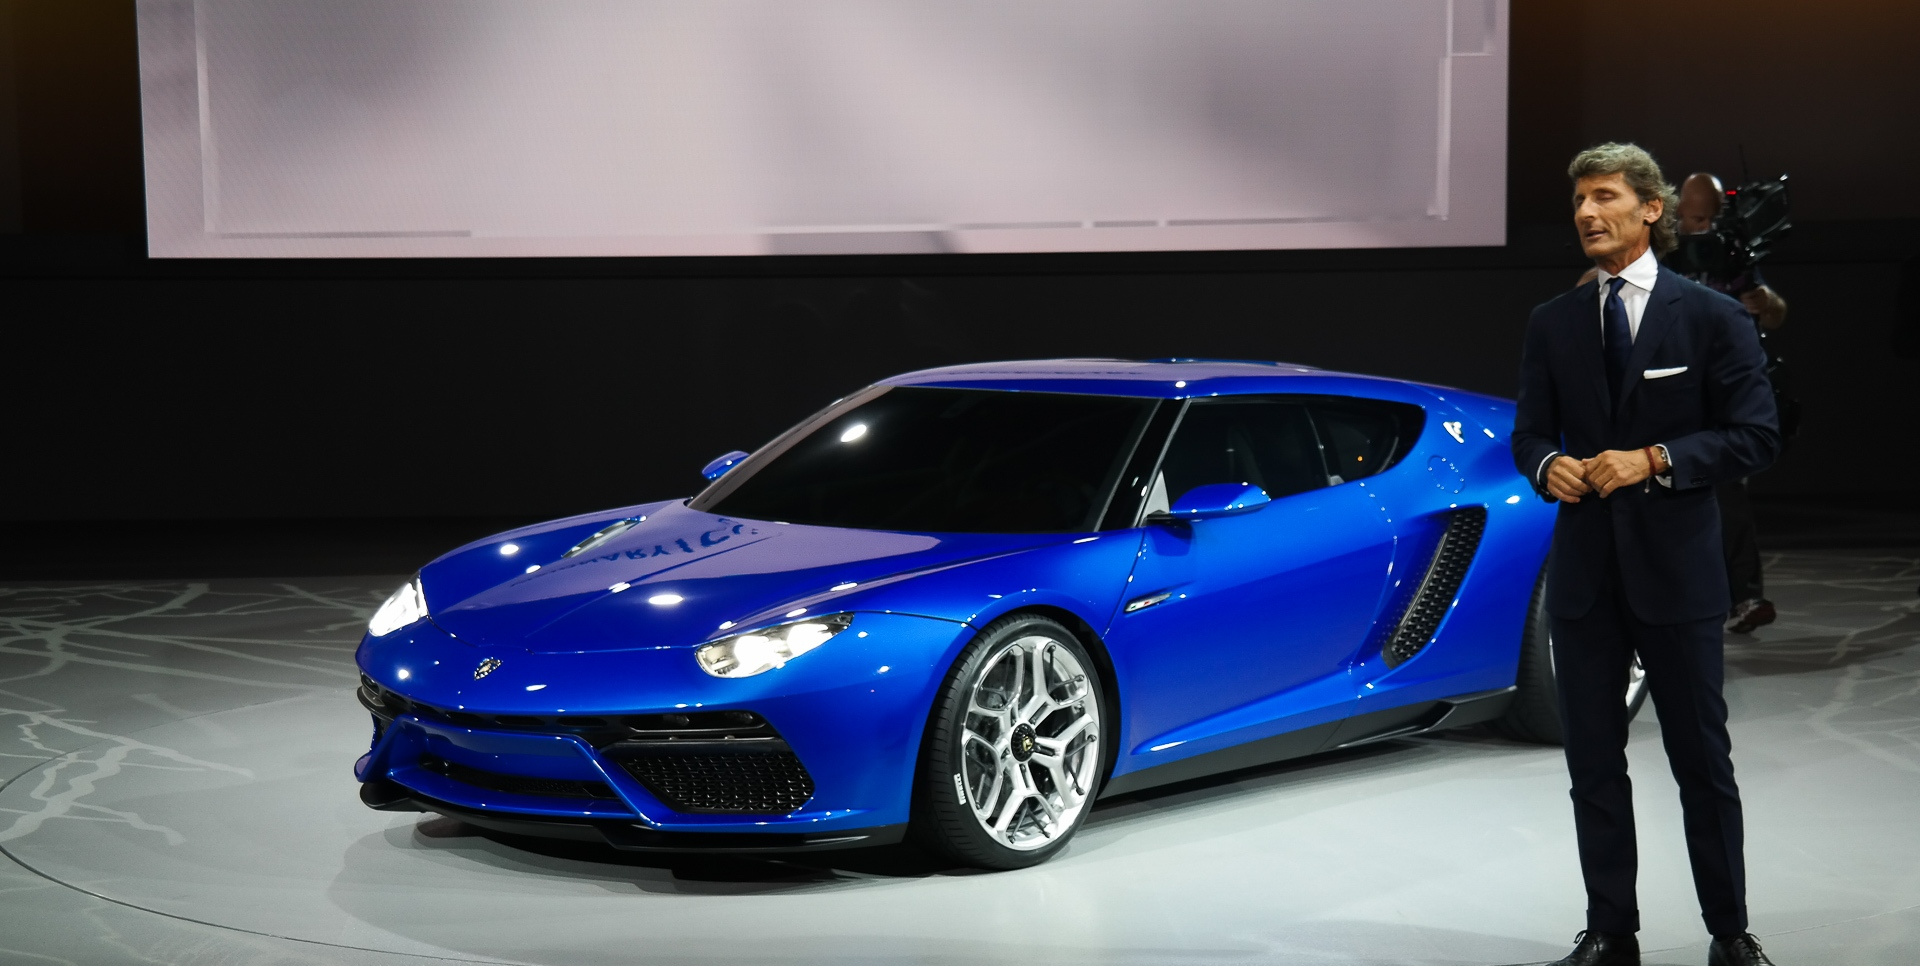 lamborghini-asterion-lp-910-4-looks-like-an-estoque-evora-mashup-live-photos_10